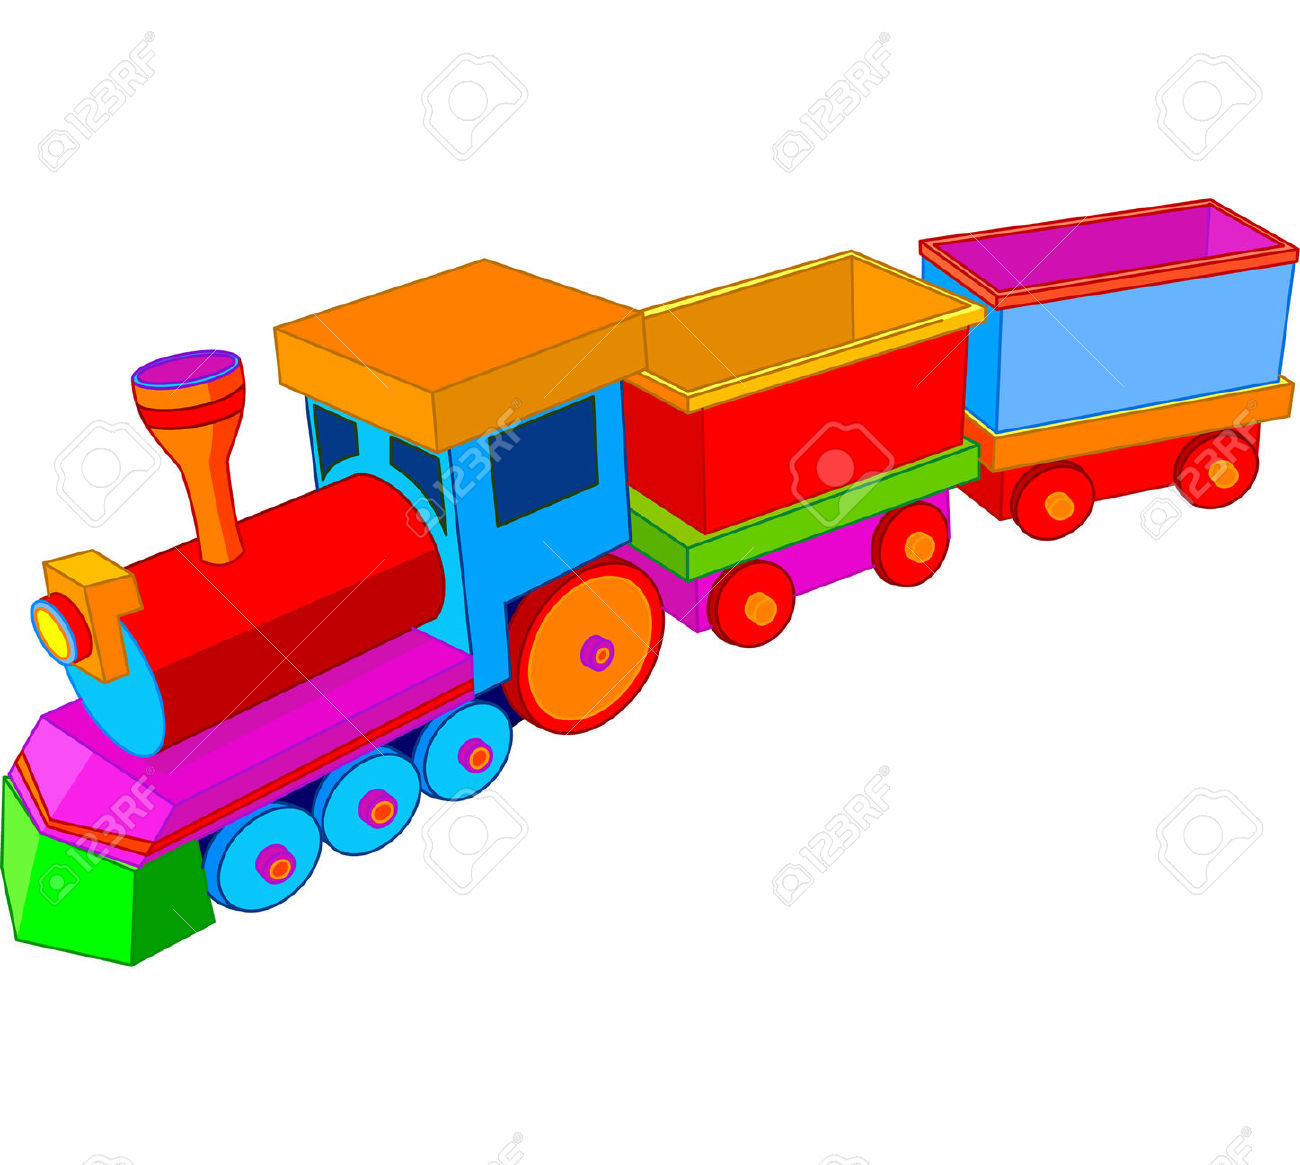 390 Miniature Train Cliparts, Stock Vector And Royalty Free.